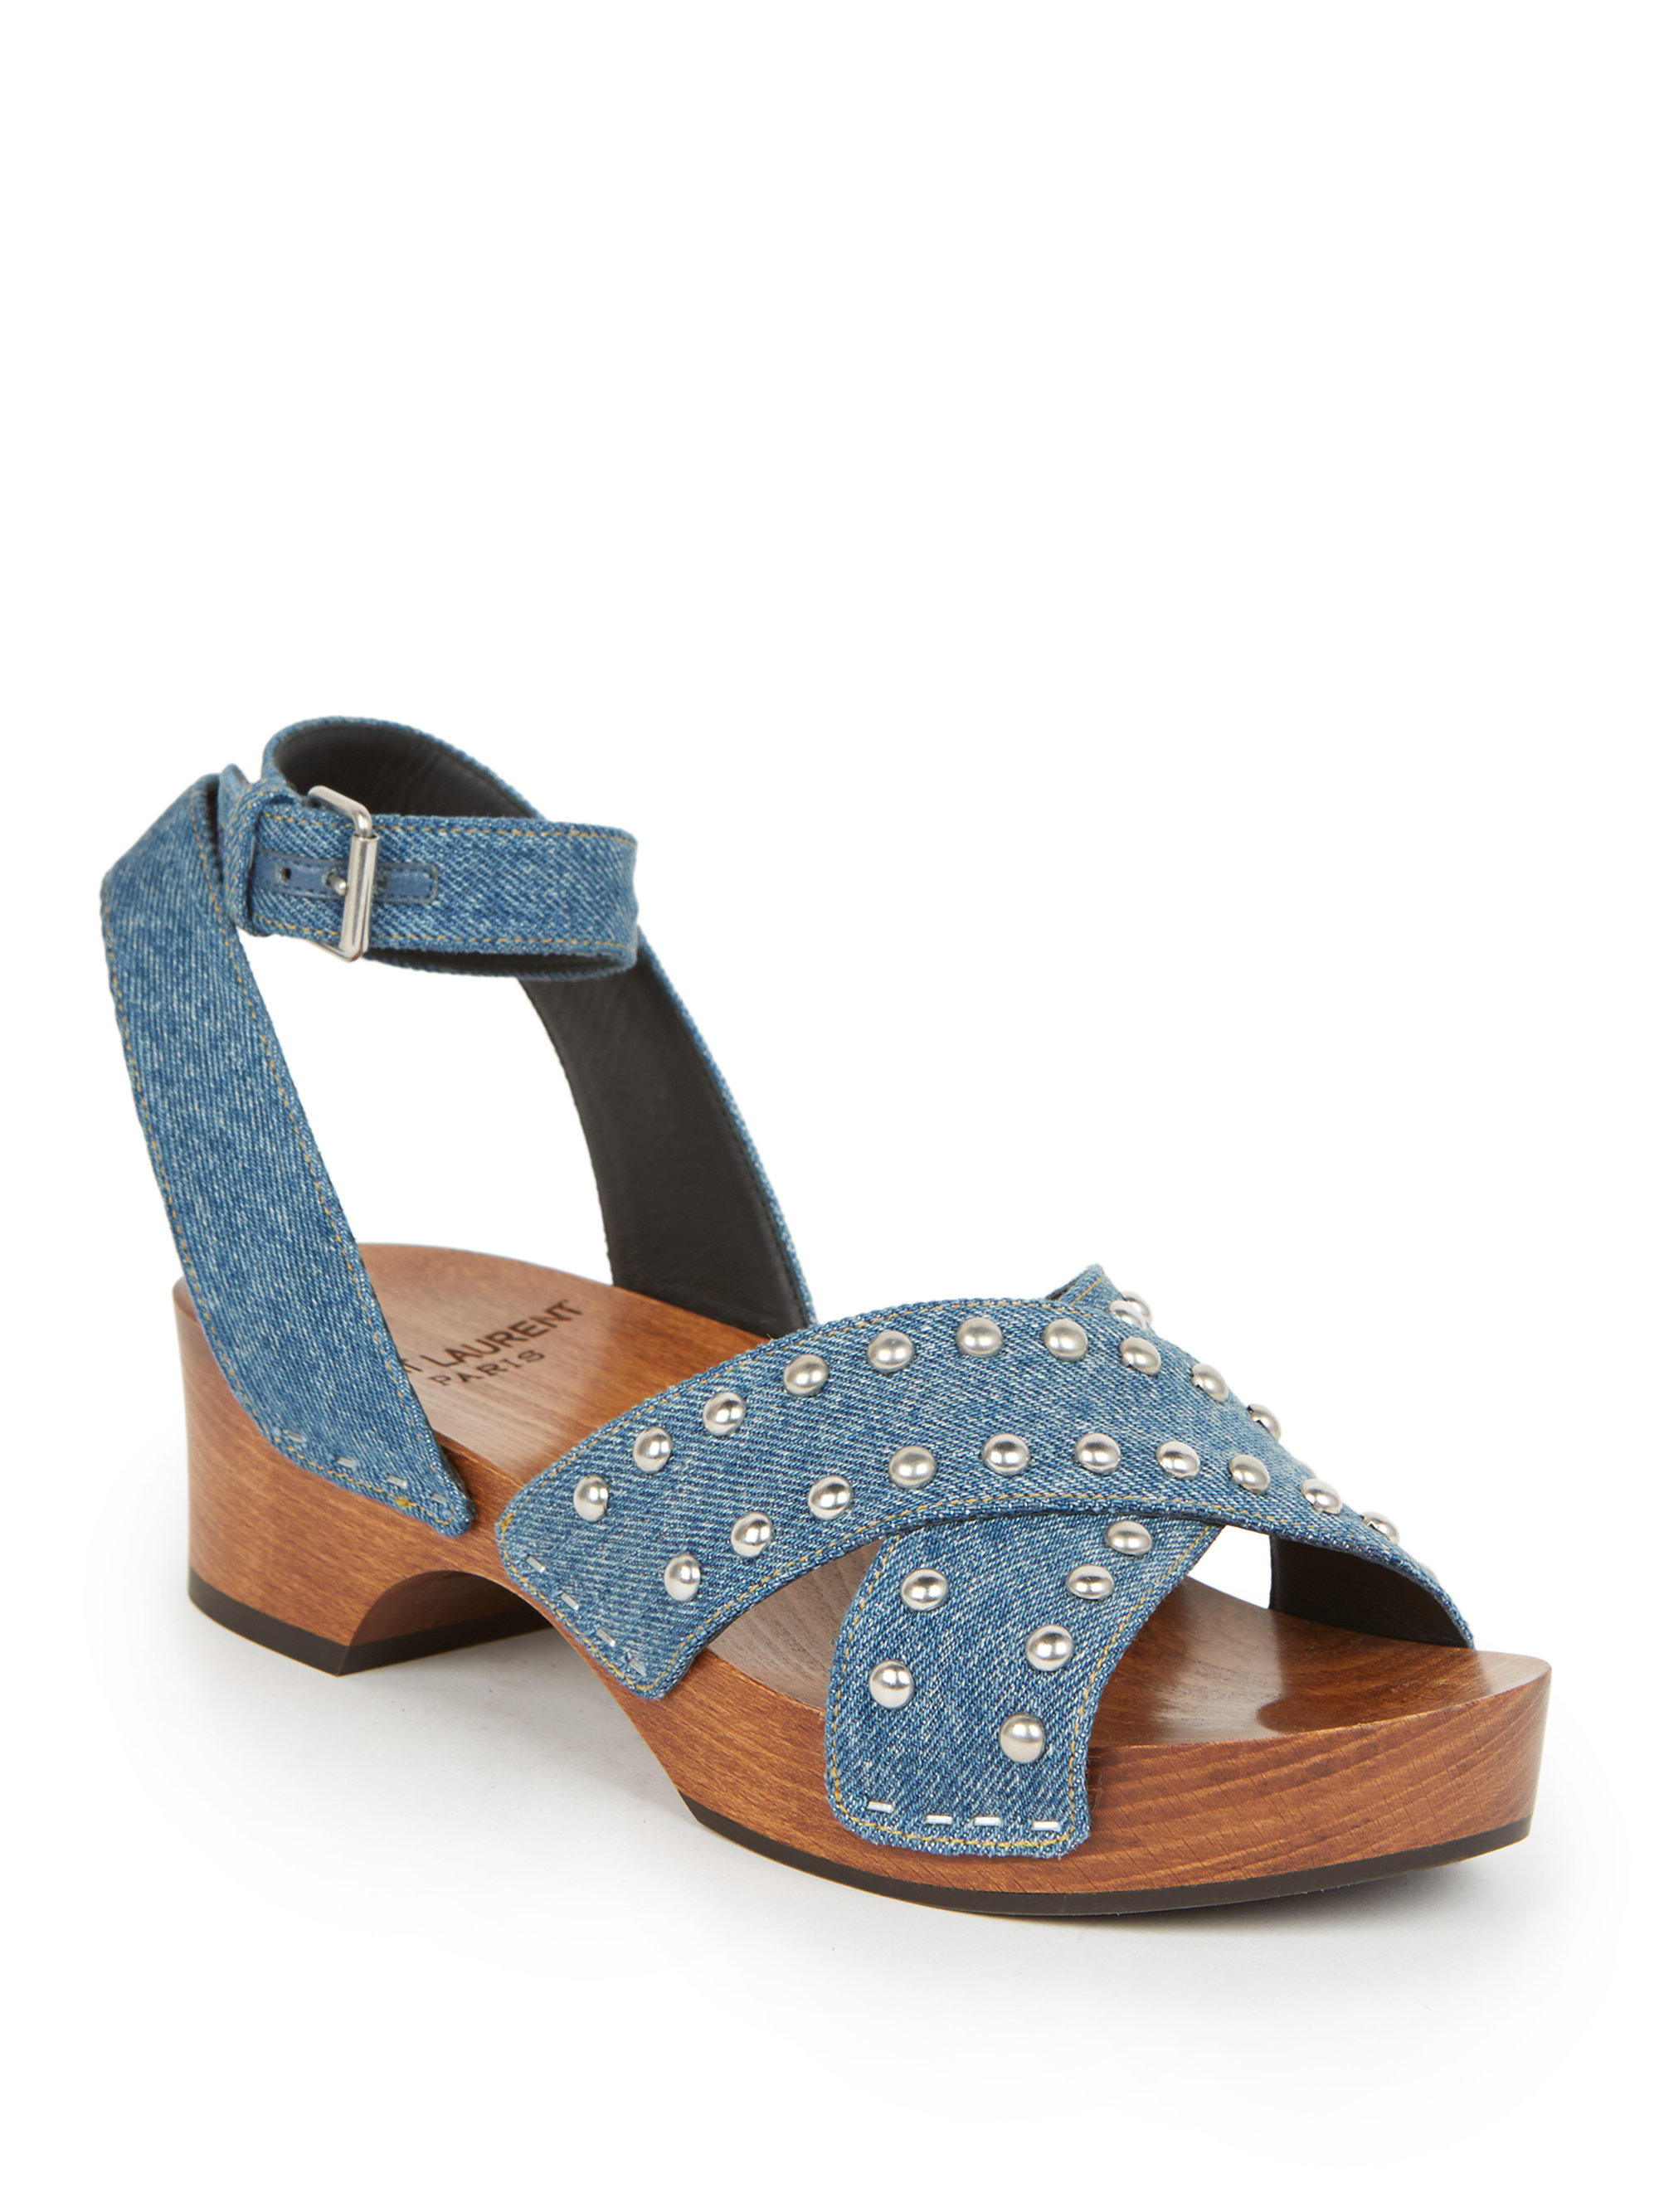 Saint Laurent Studded Denim Clog Sandals In Blue Lyst